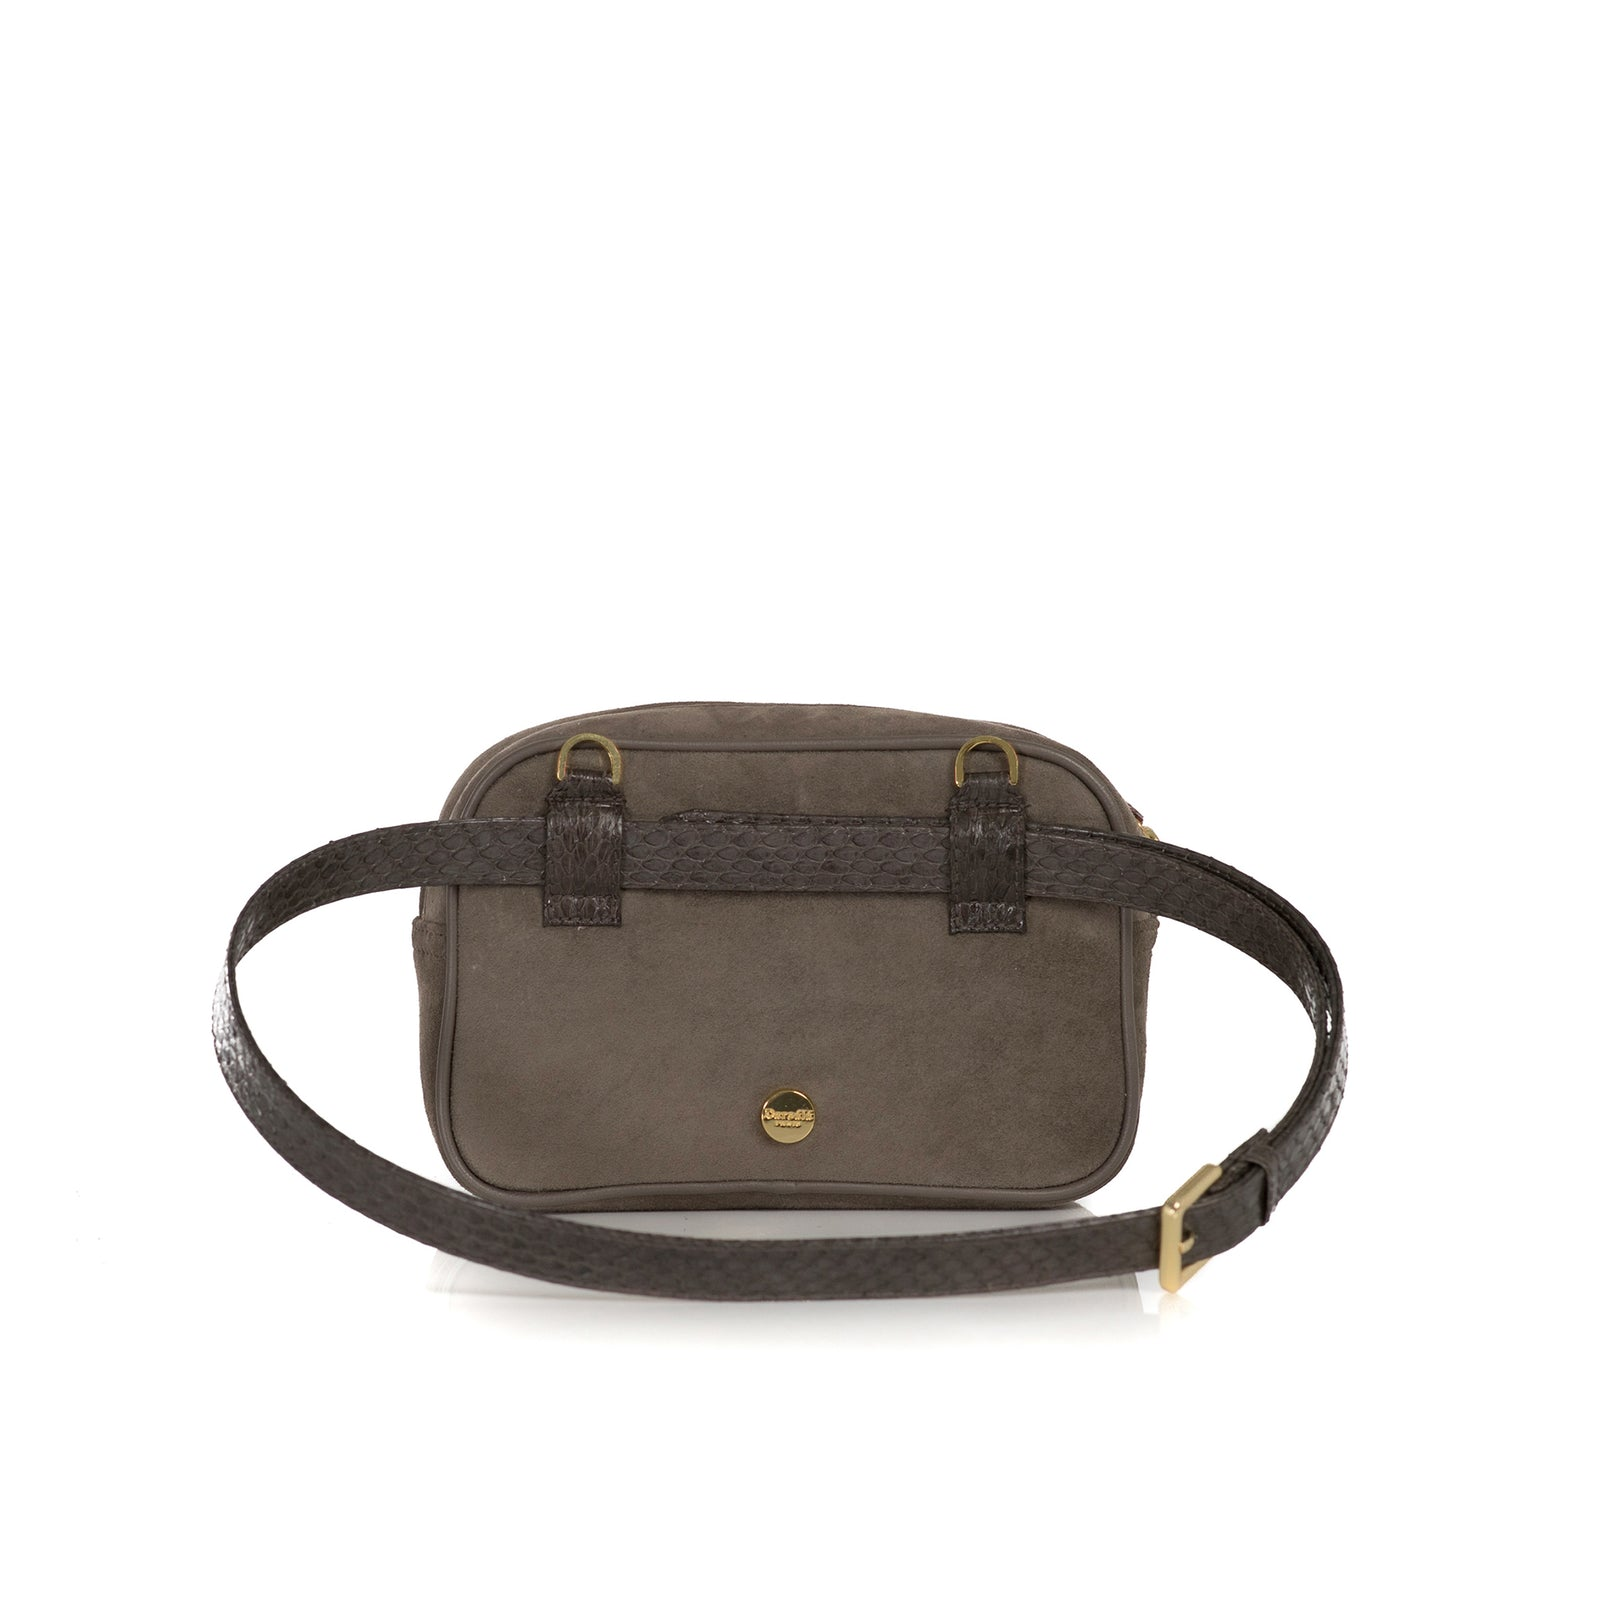 WANTOO, Two-in-one belt and crossbody bag, cognac cobra and lamb